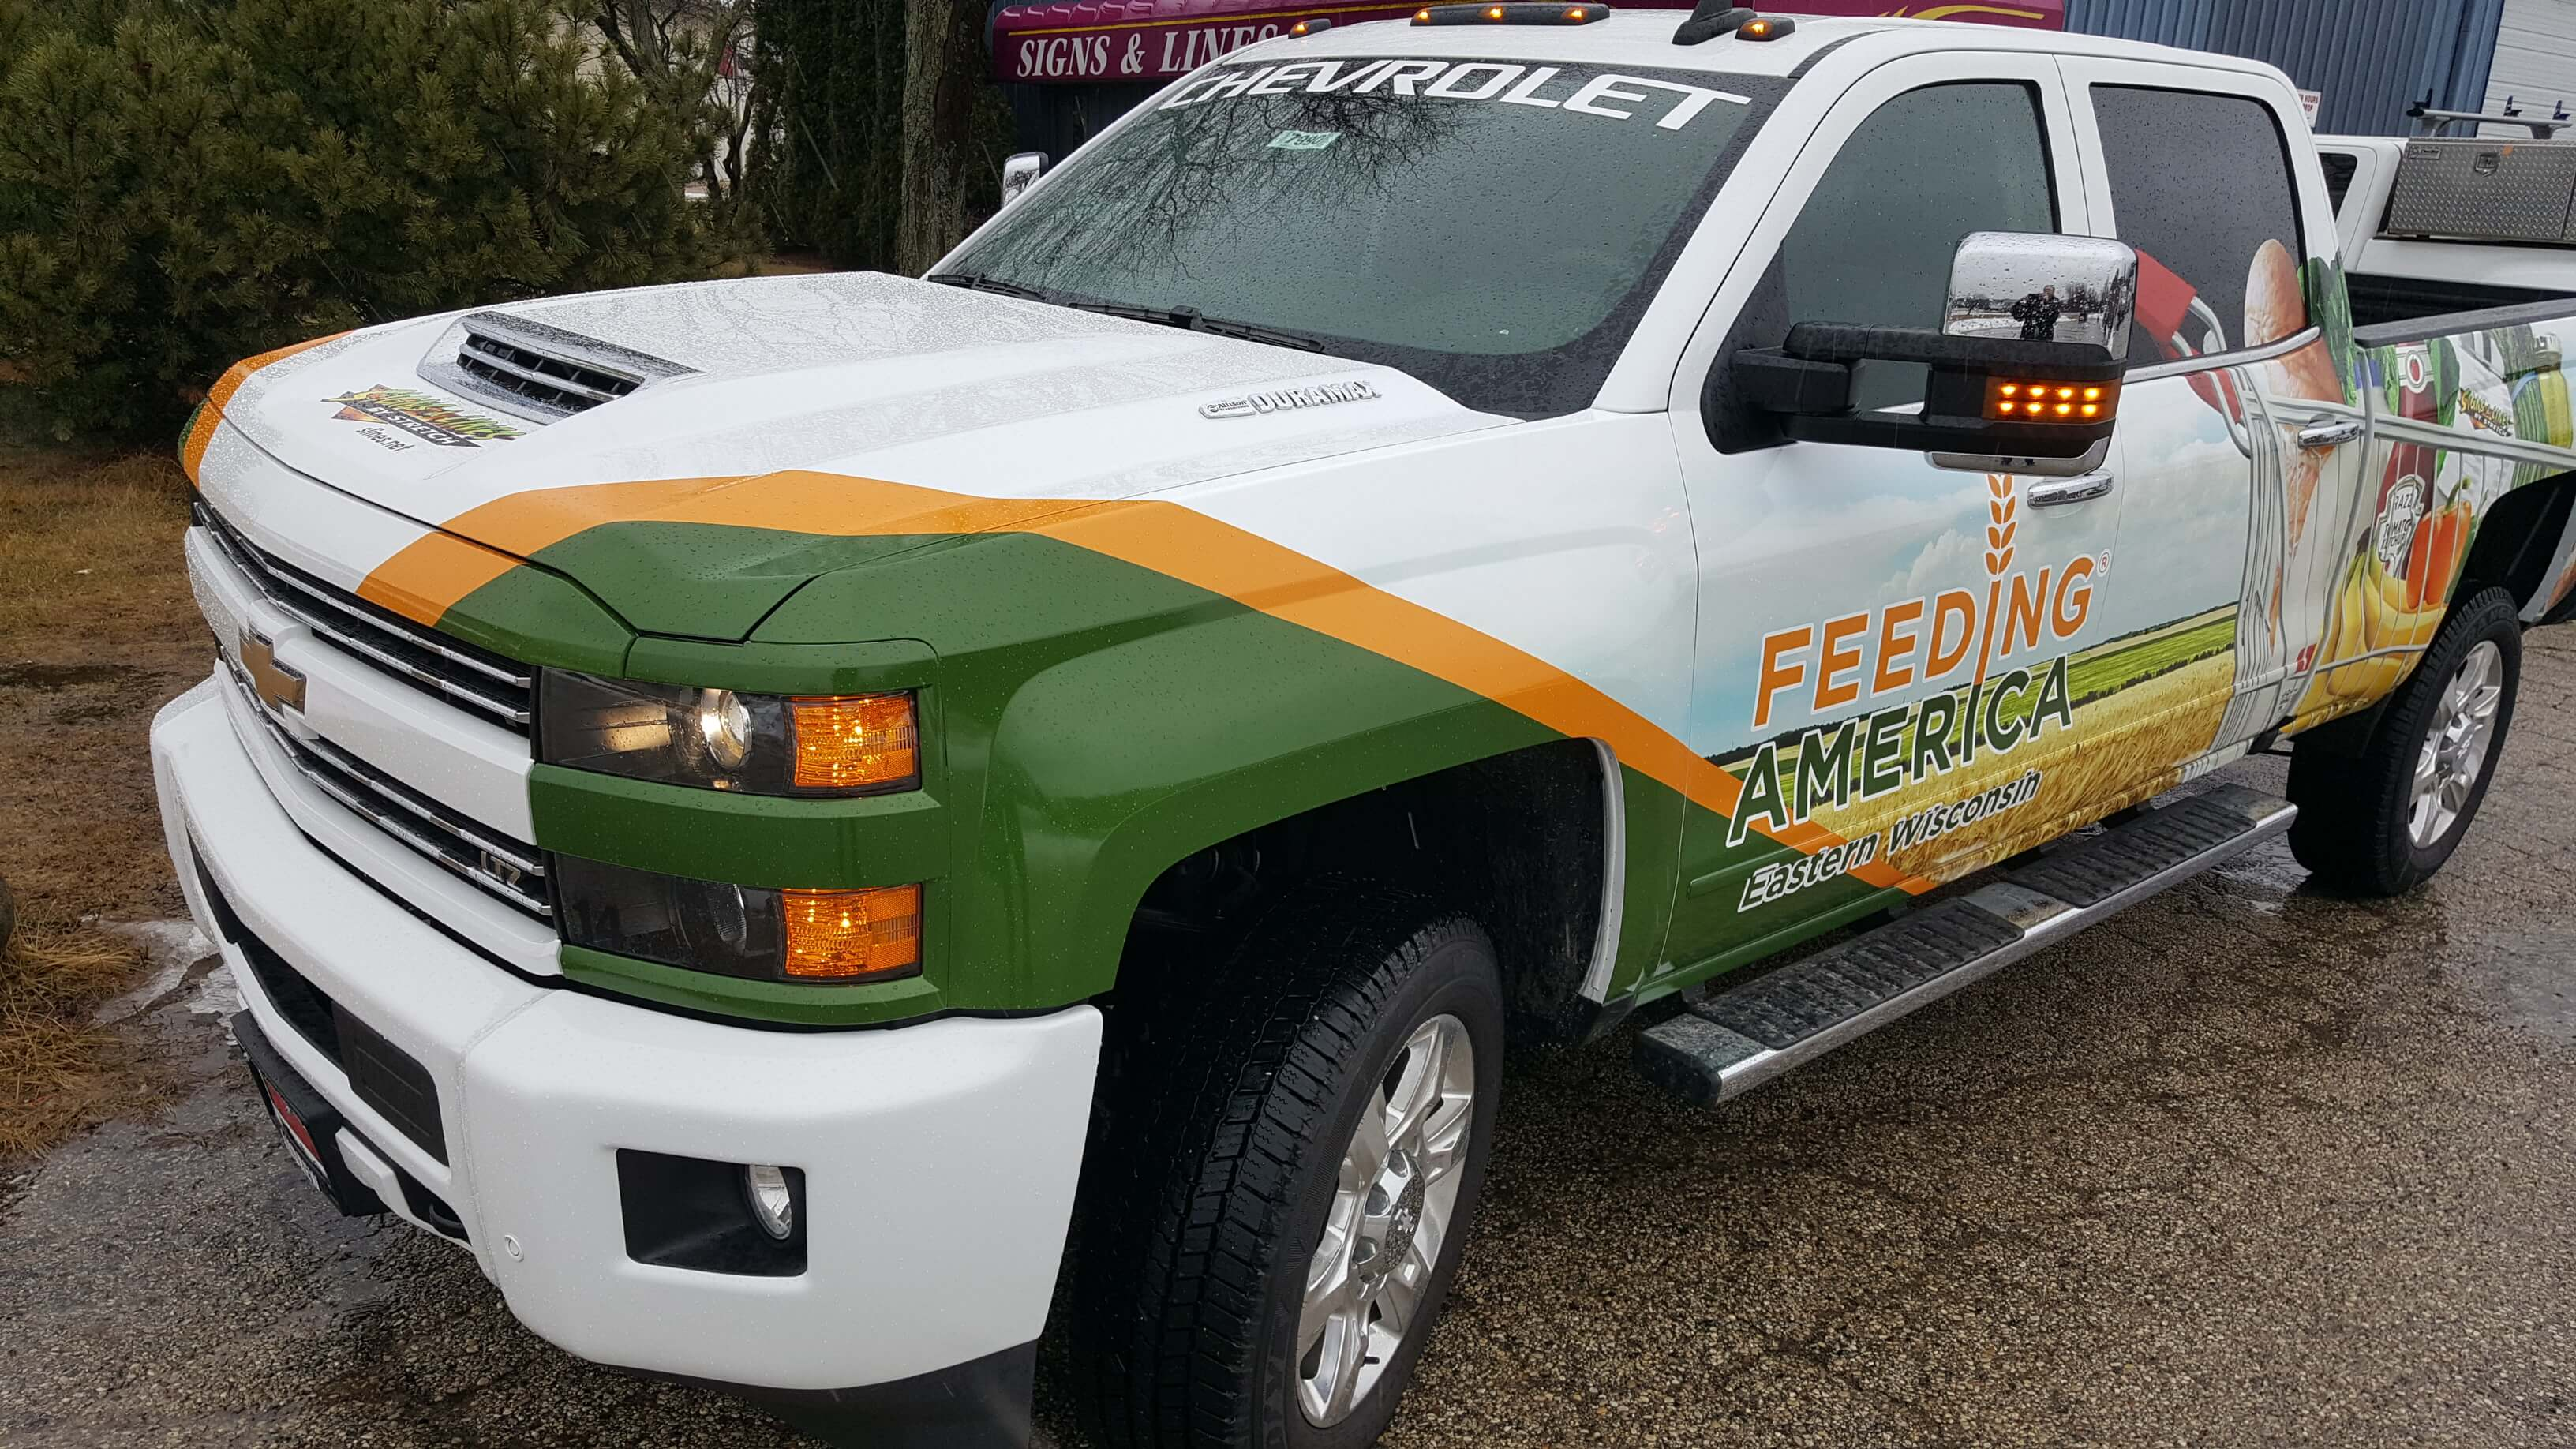 Feeding America Signs and Lines Chevy Wrap